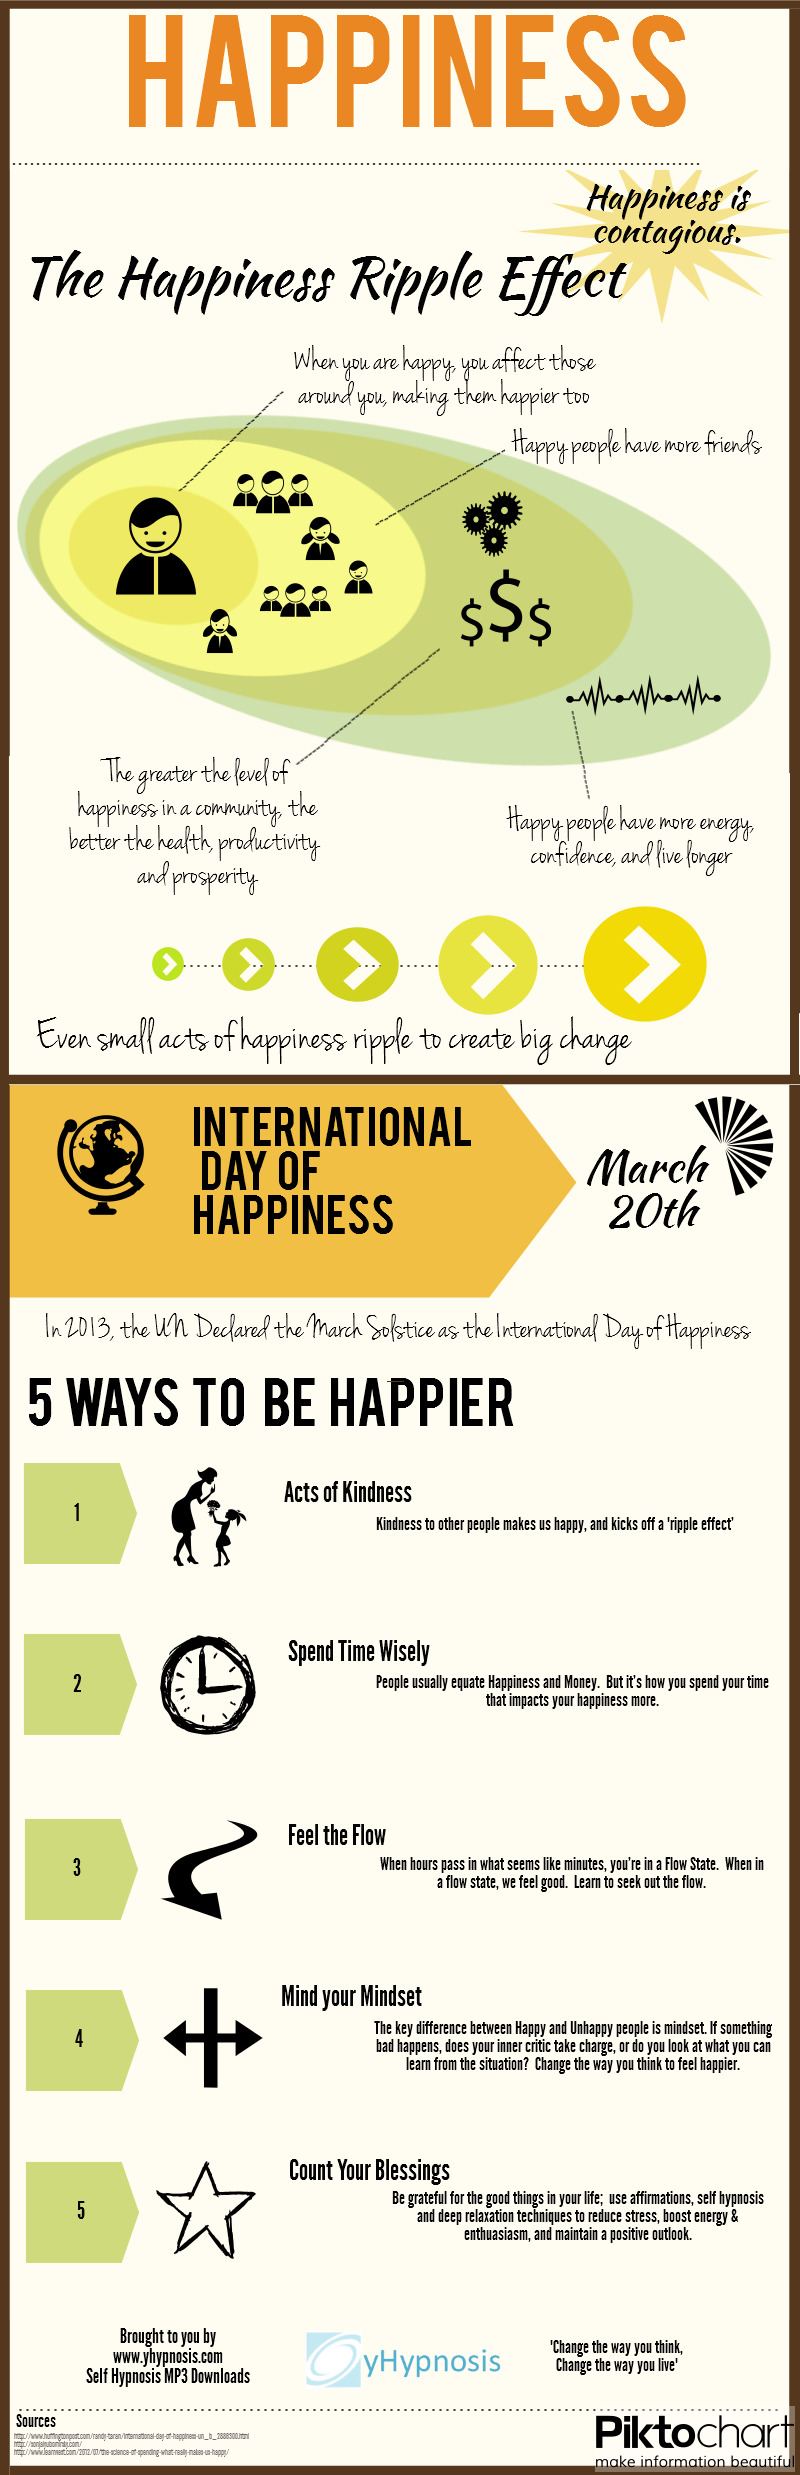 Ways to Spread Happiness